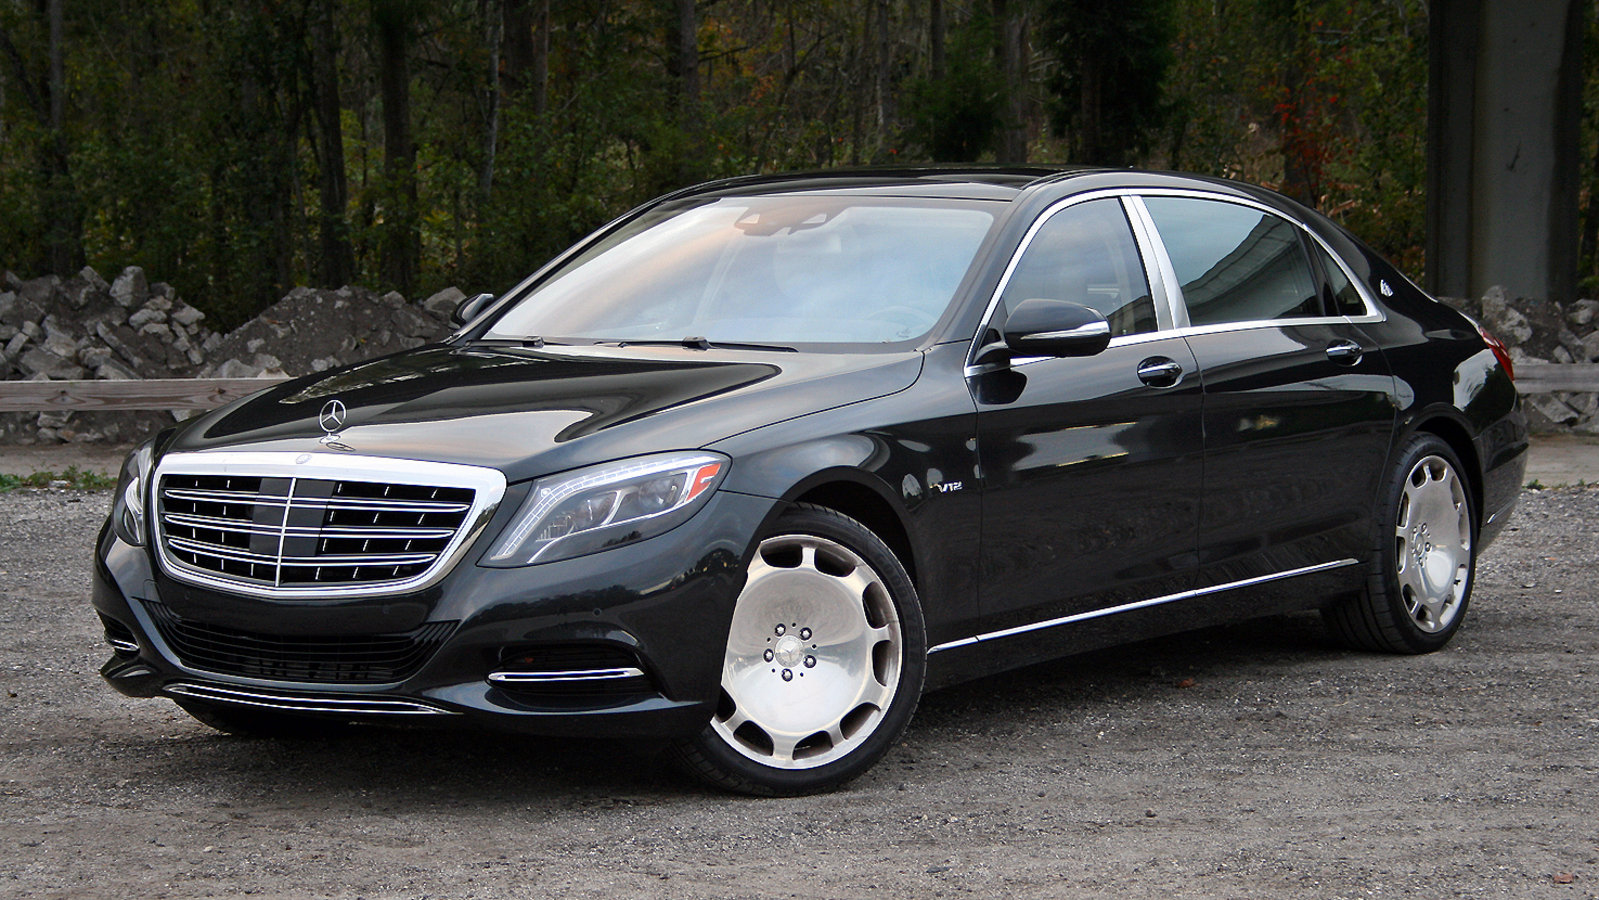 2016 mercedes maybach s600 driven review top speed. Black Bedroom Furniture Sets. Home Design Ideas